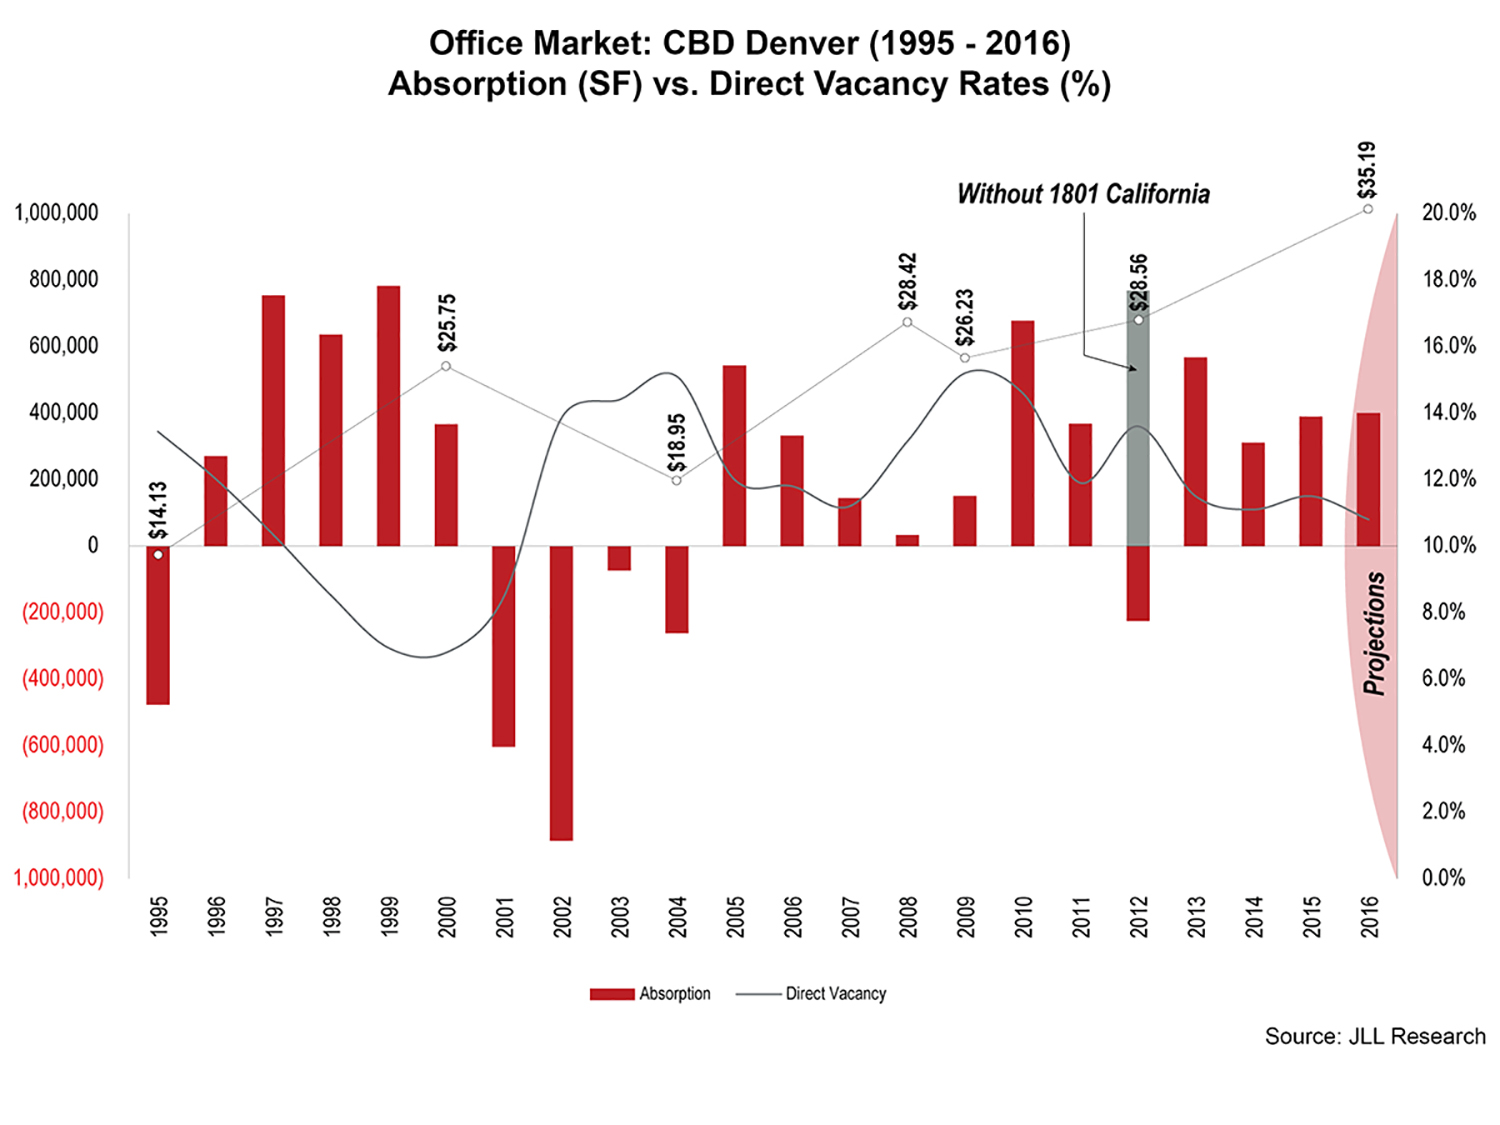 CRE Market_CBD_Absorption-Vacancy_JLL Research_Denver CO